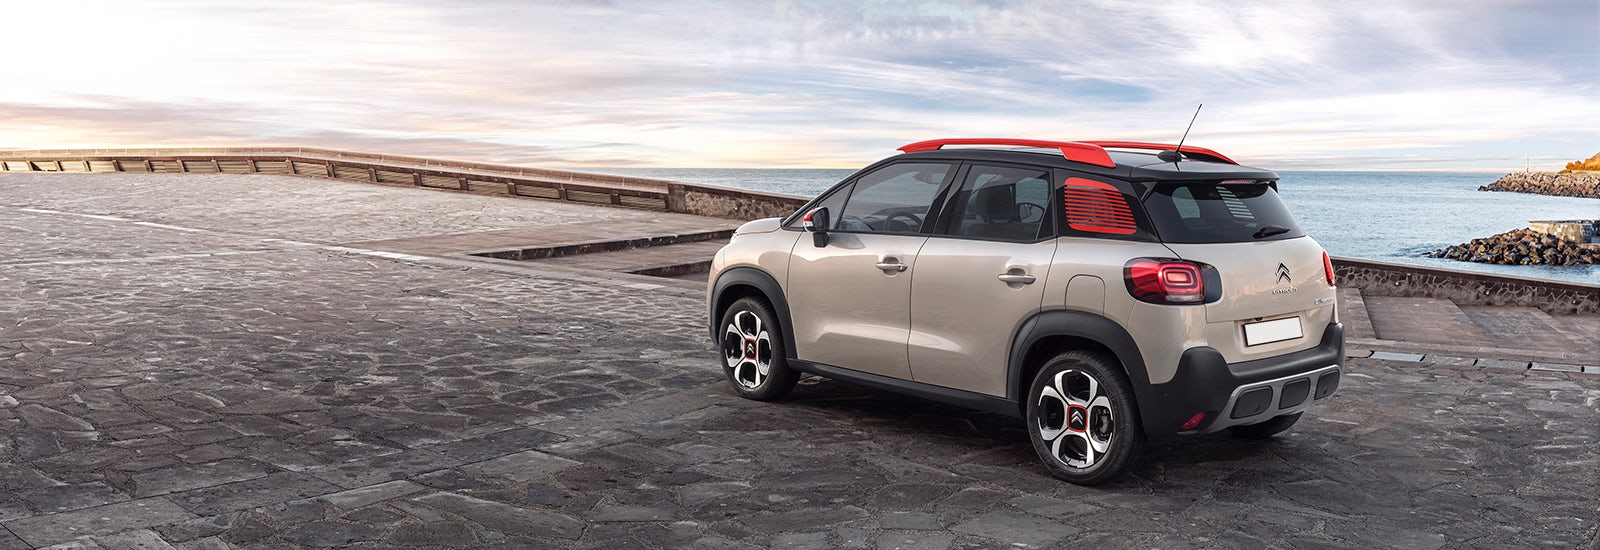 2017 citroen c3 aircross price specs release date carwow autos post. Black Bedroom Furniture Sets. Home Design Ideas